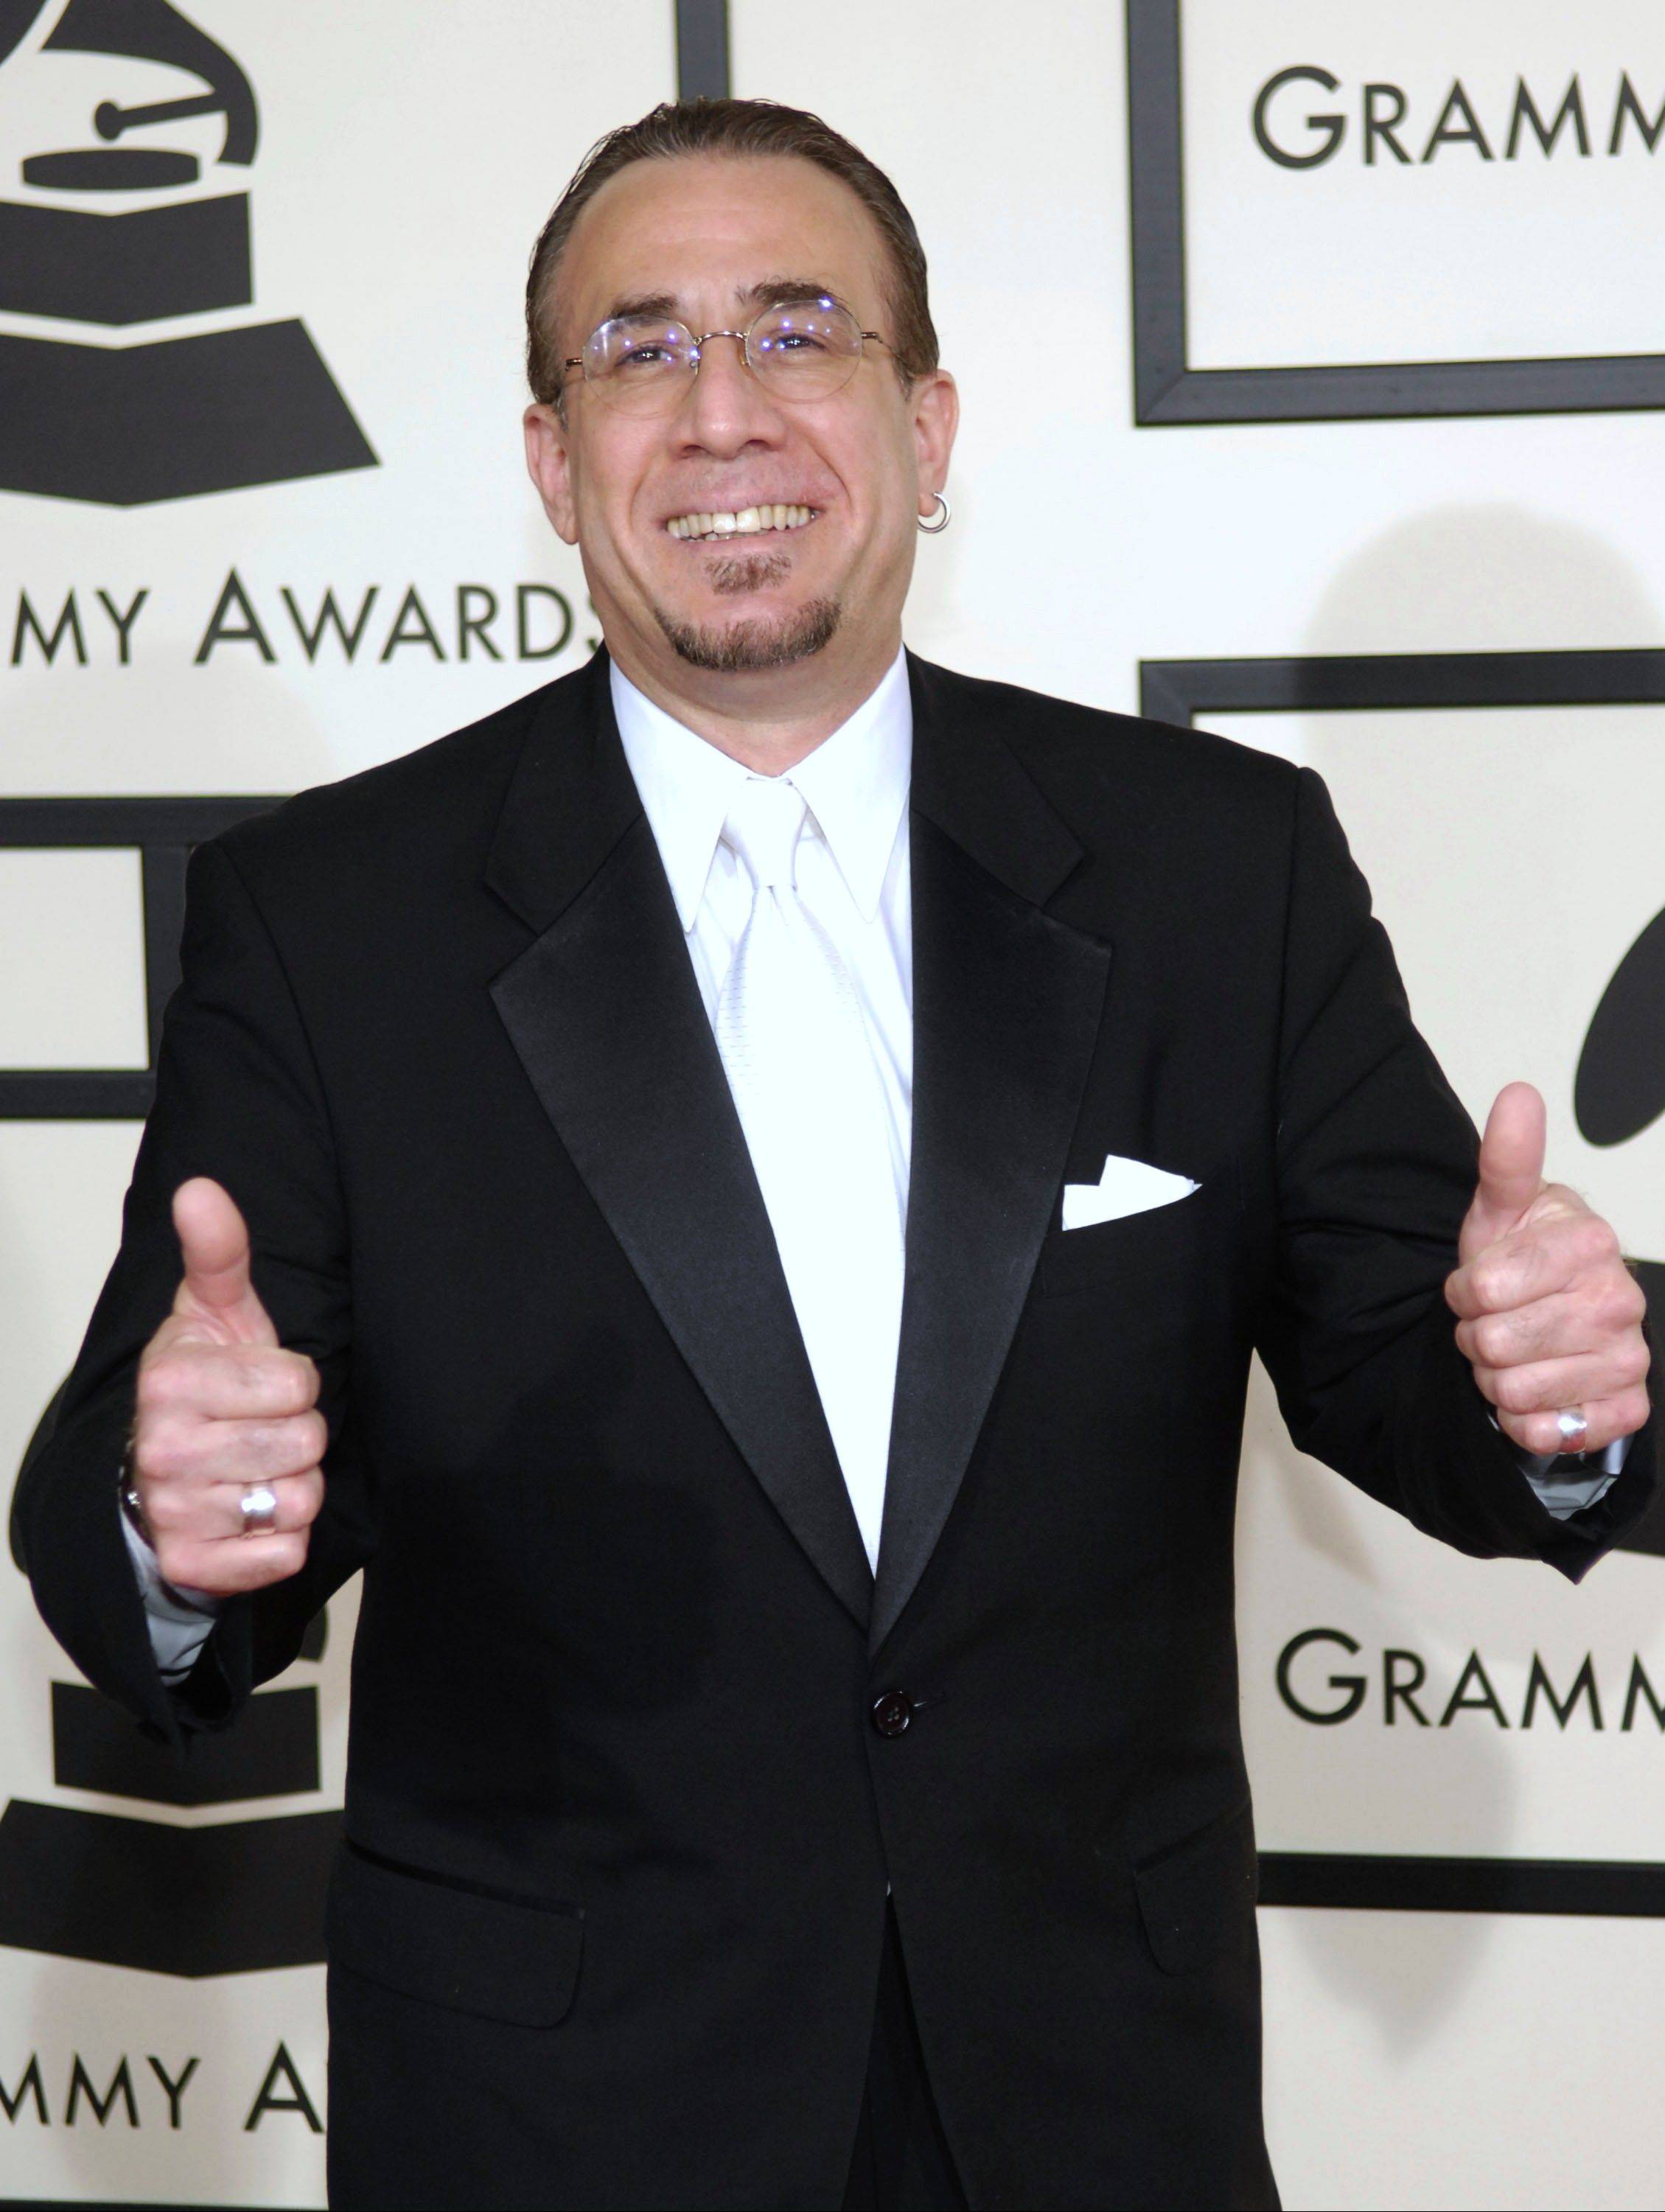 Latin jazz musician Bobby Sanabria, who led the protest against the Recording Academy when it downsized from 109 to 78 categories in 2011, is nominated for best Latin jazz album -- one of the awards that had been eliminated but returns at the awards show this year.